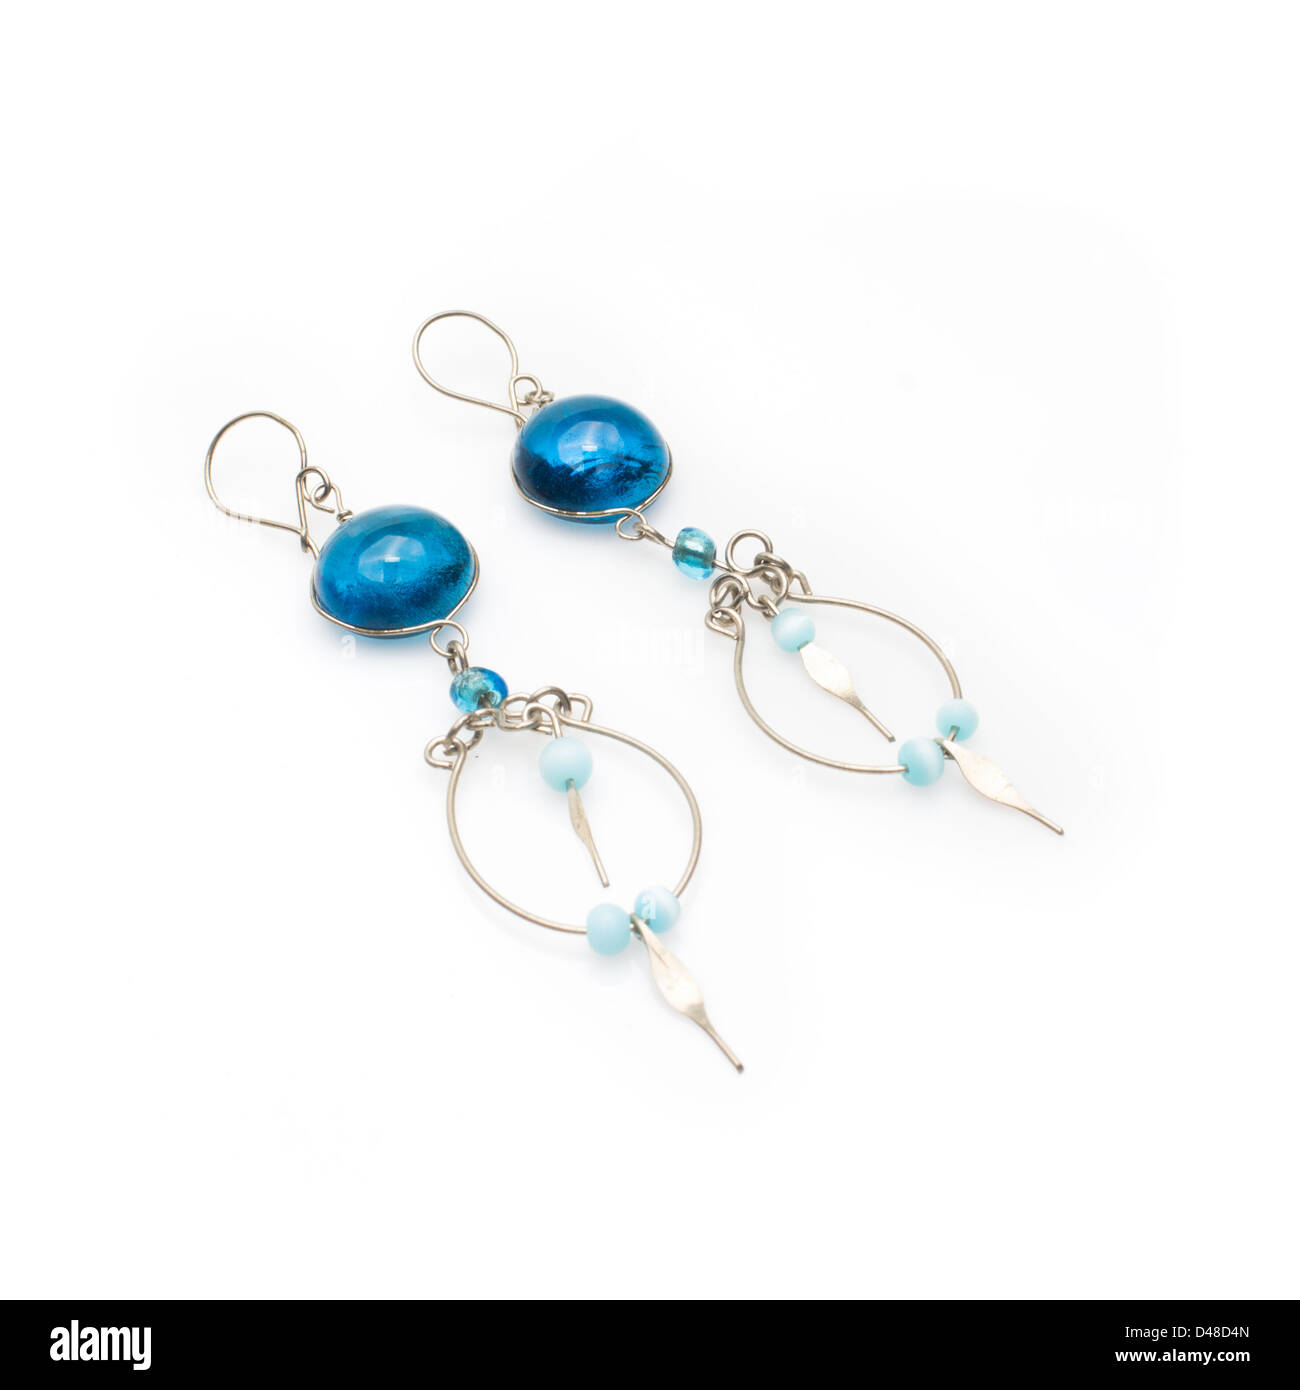 Beaded Earrings Stock Photos & Beaded Earrings Stock